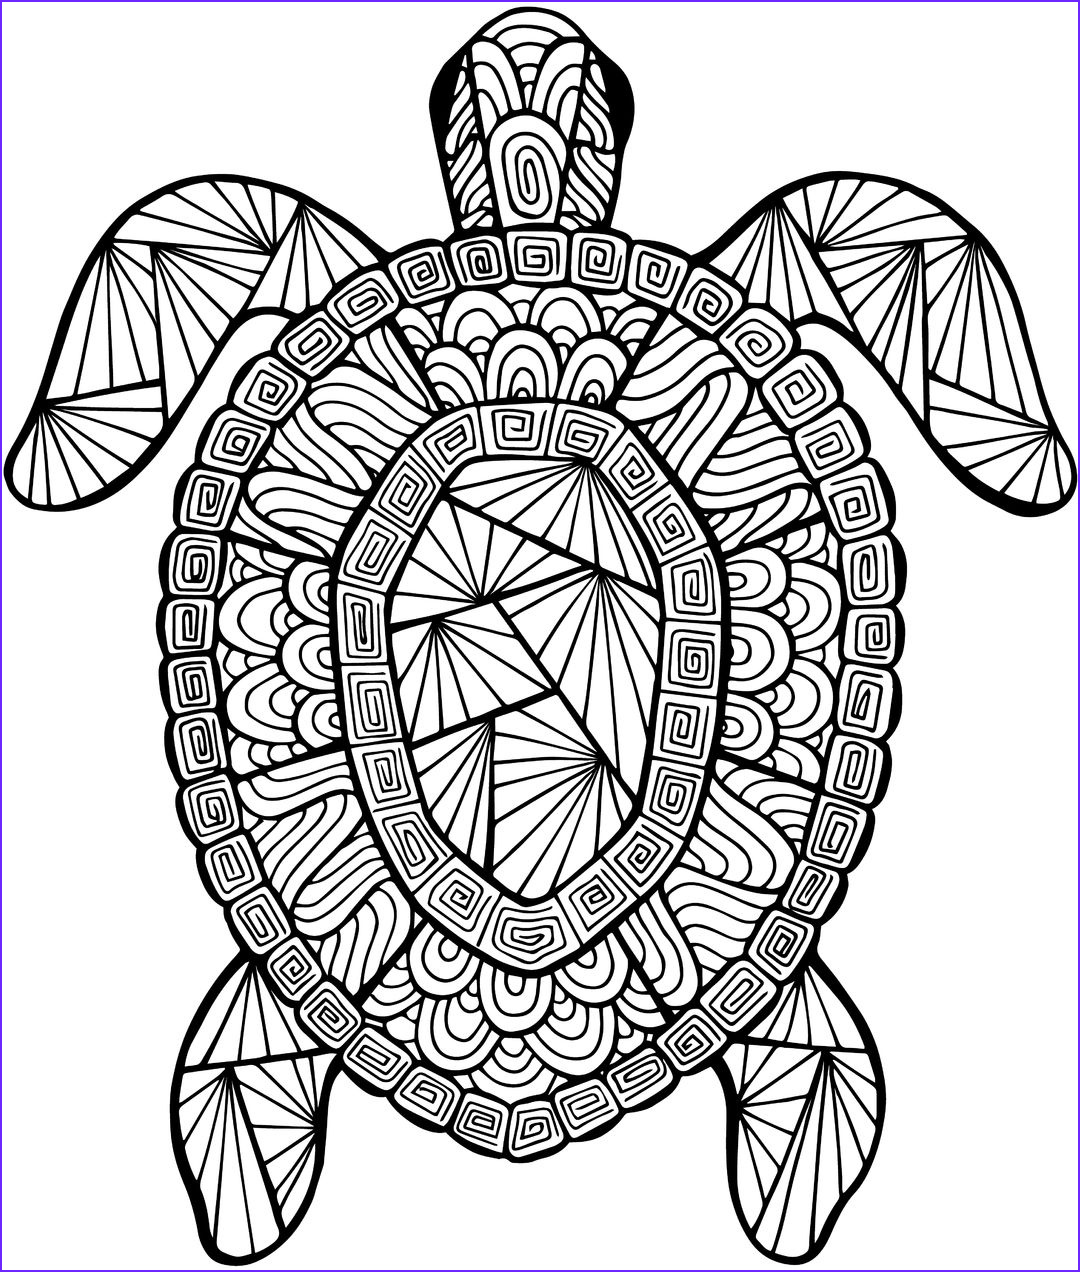 Turtle Coloring Book Elegant Images Detailed Sea Turtle Advanced Coloring Page